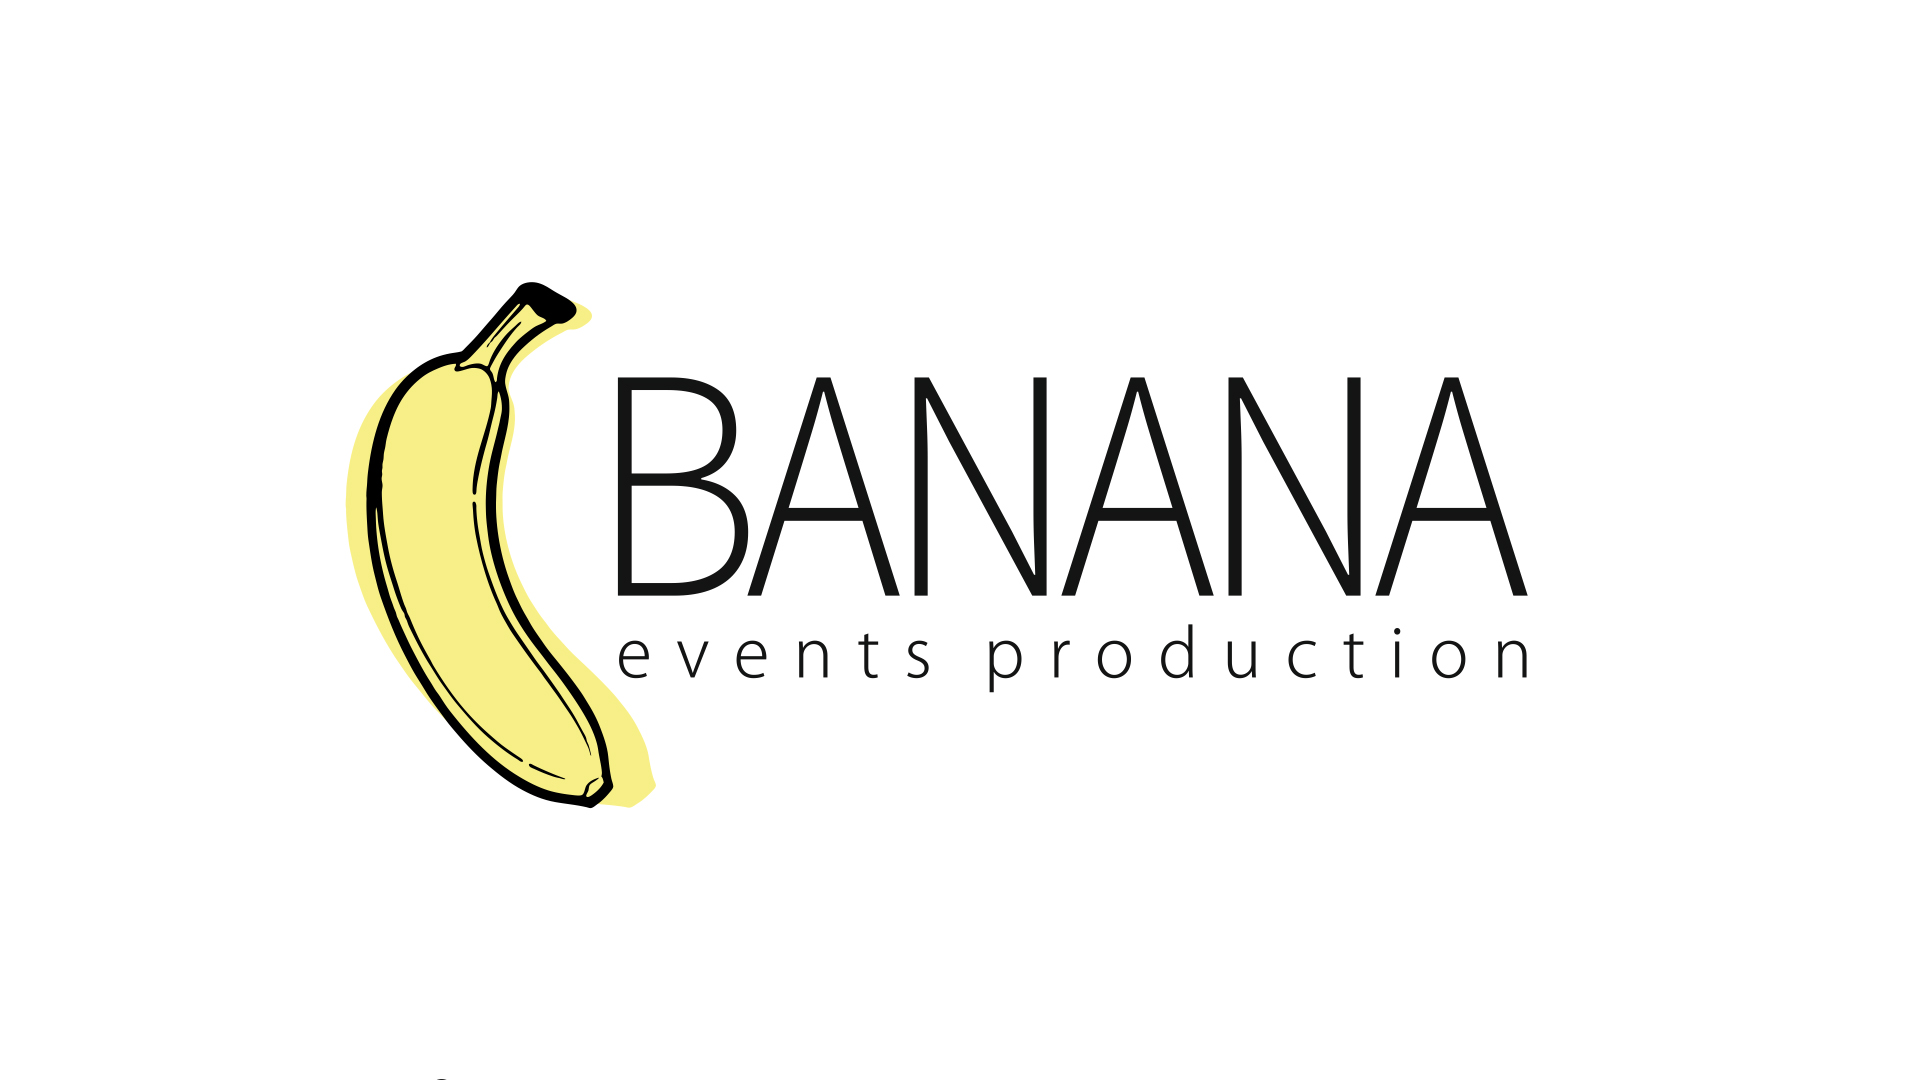 BANANA EVENTS PRODUCTION_logo